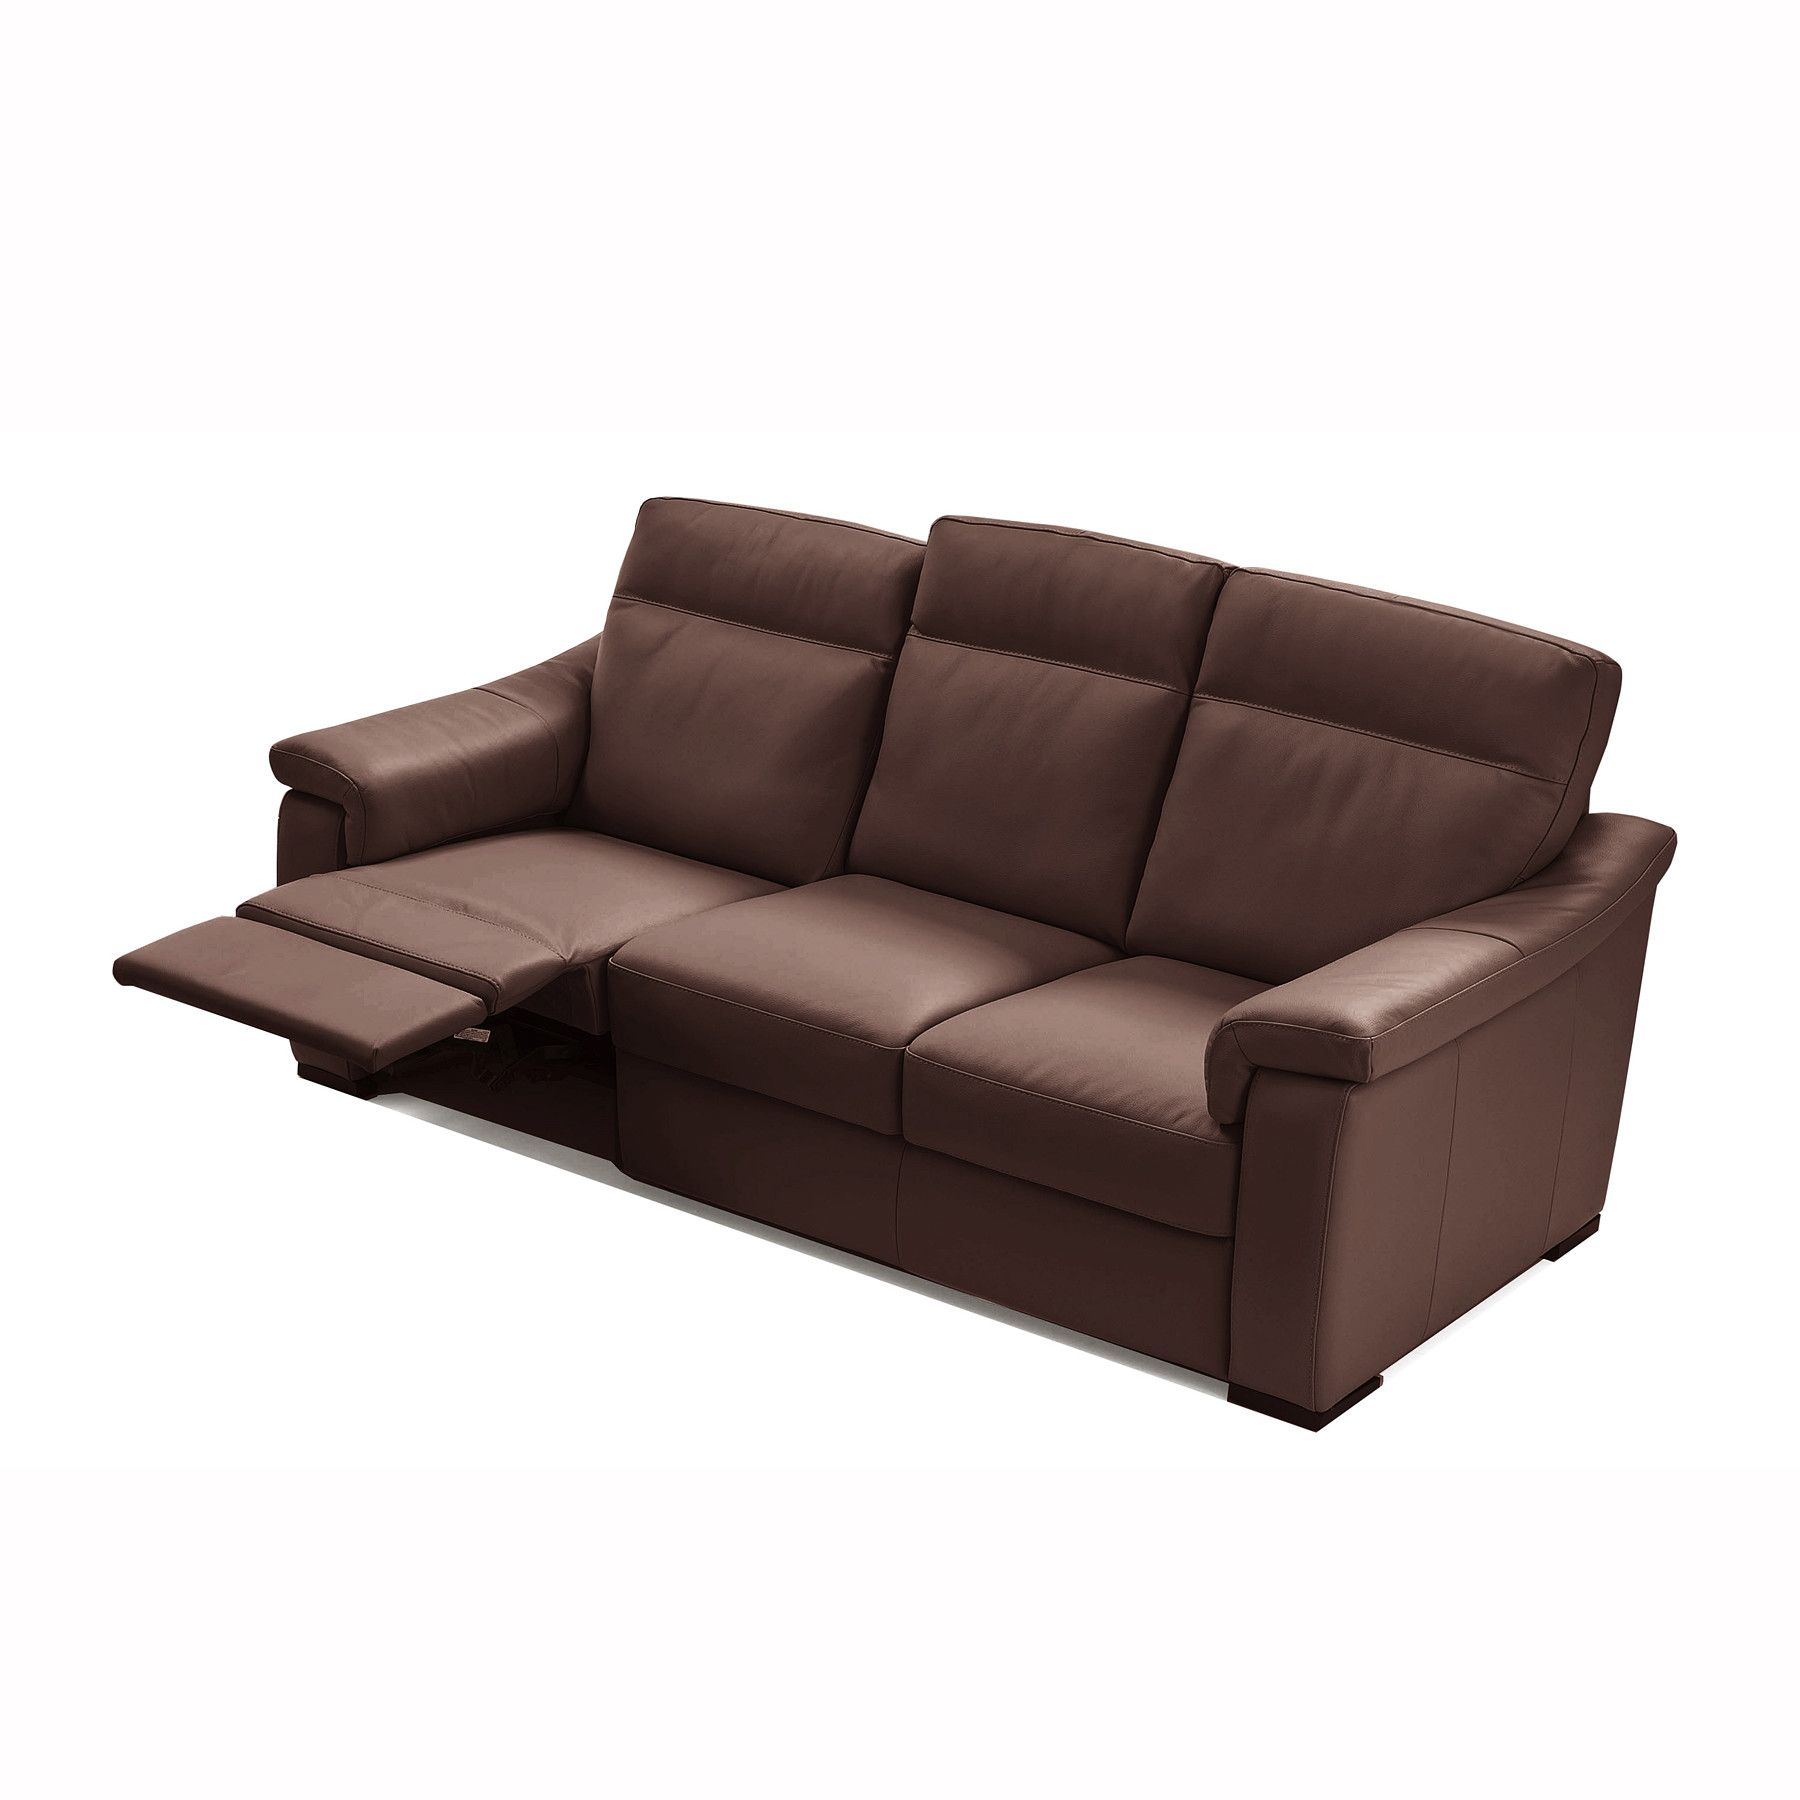 dump dual reclining picture luxe living furniture of outlet recliner sofa the flow room